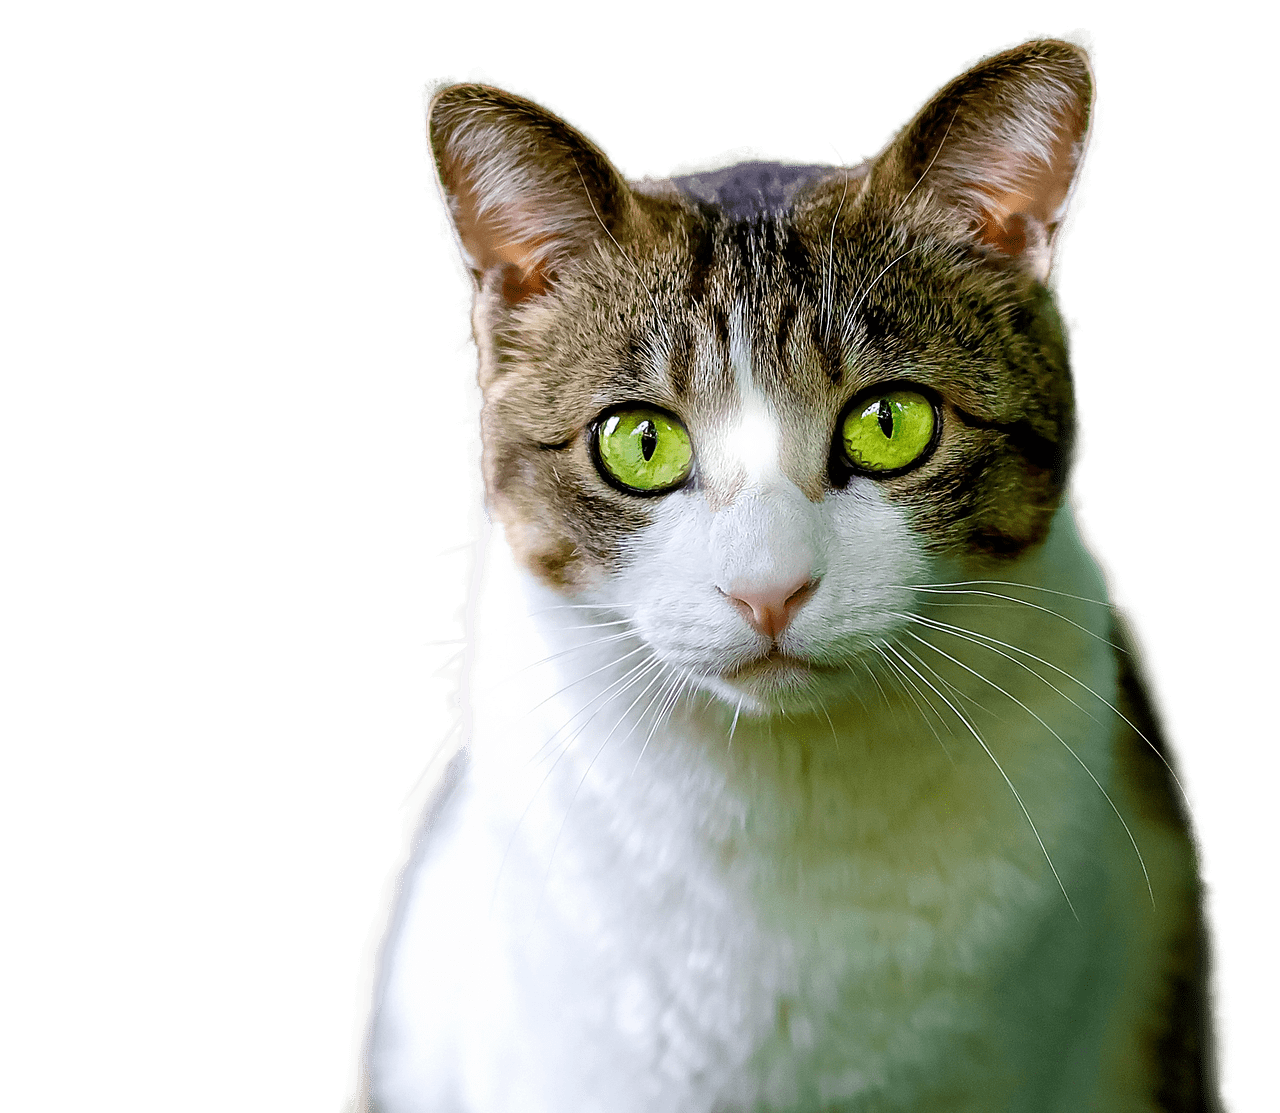 Cat Green Eyes Transparent Png Stickpng